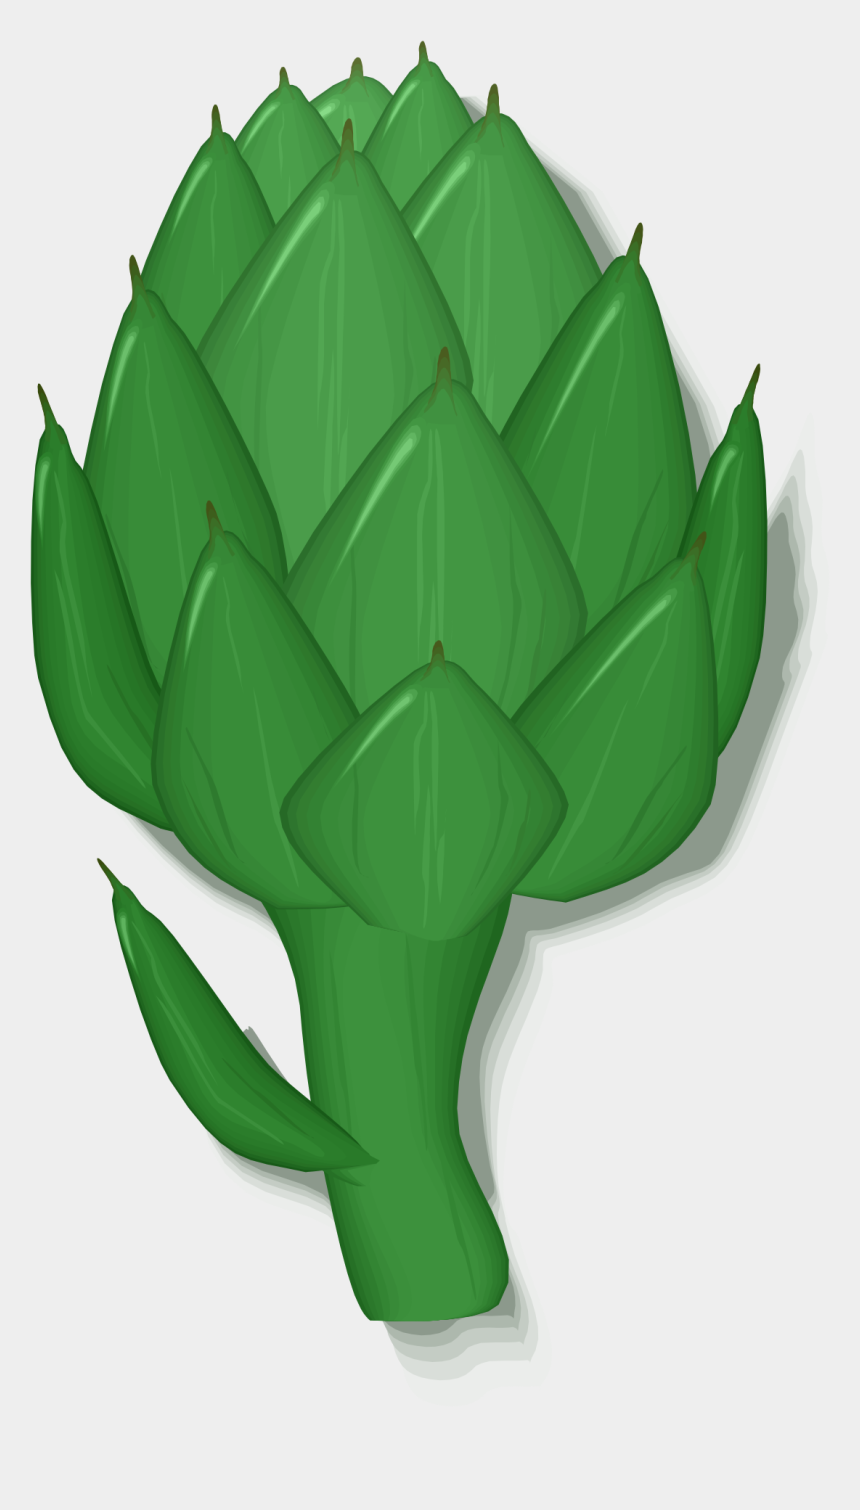 clipart broccoli, Cartoons - Creative Commons Clipart - Wikimedia Commons